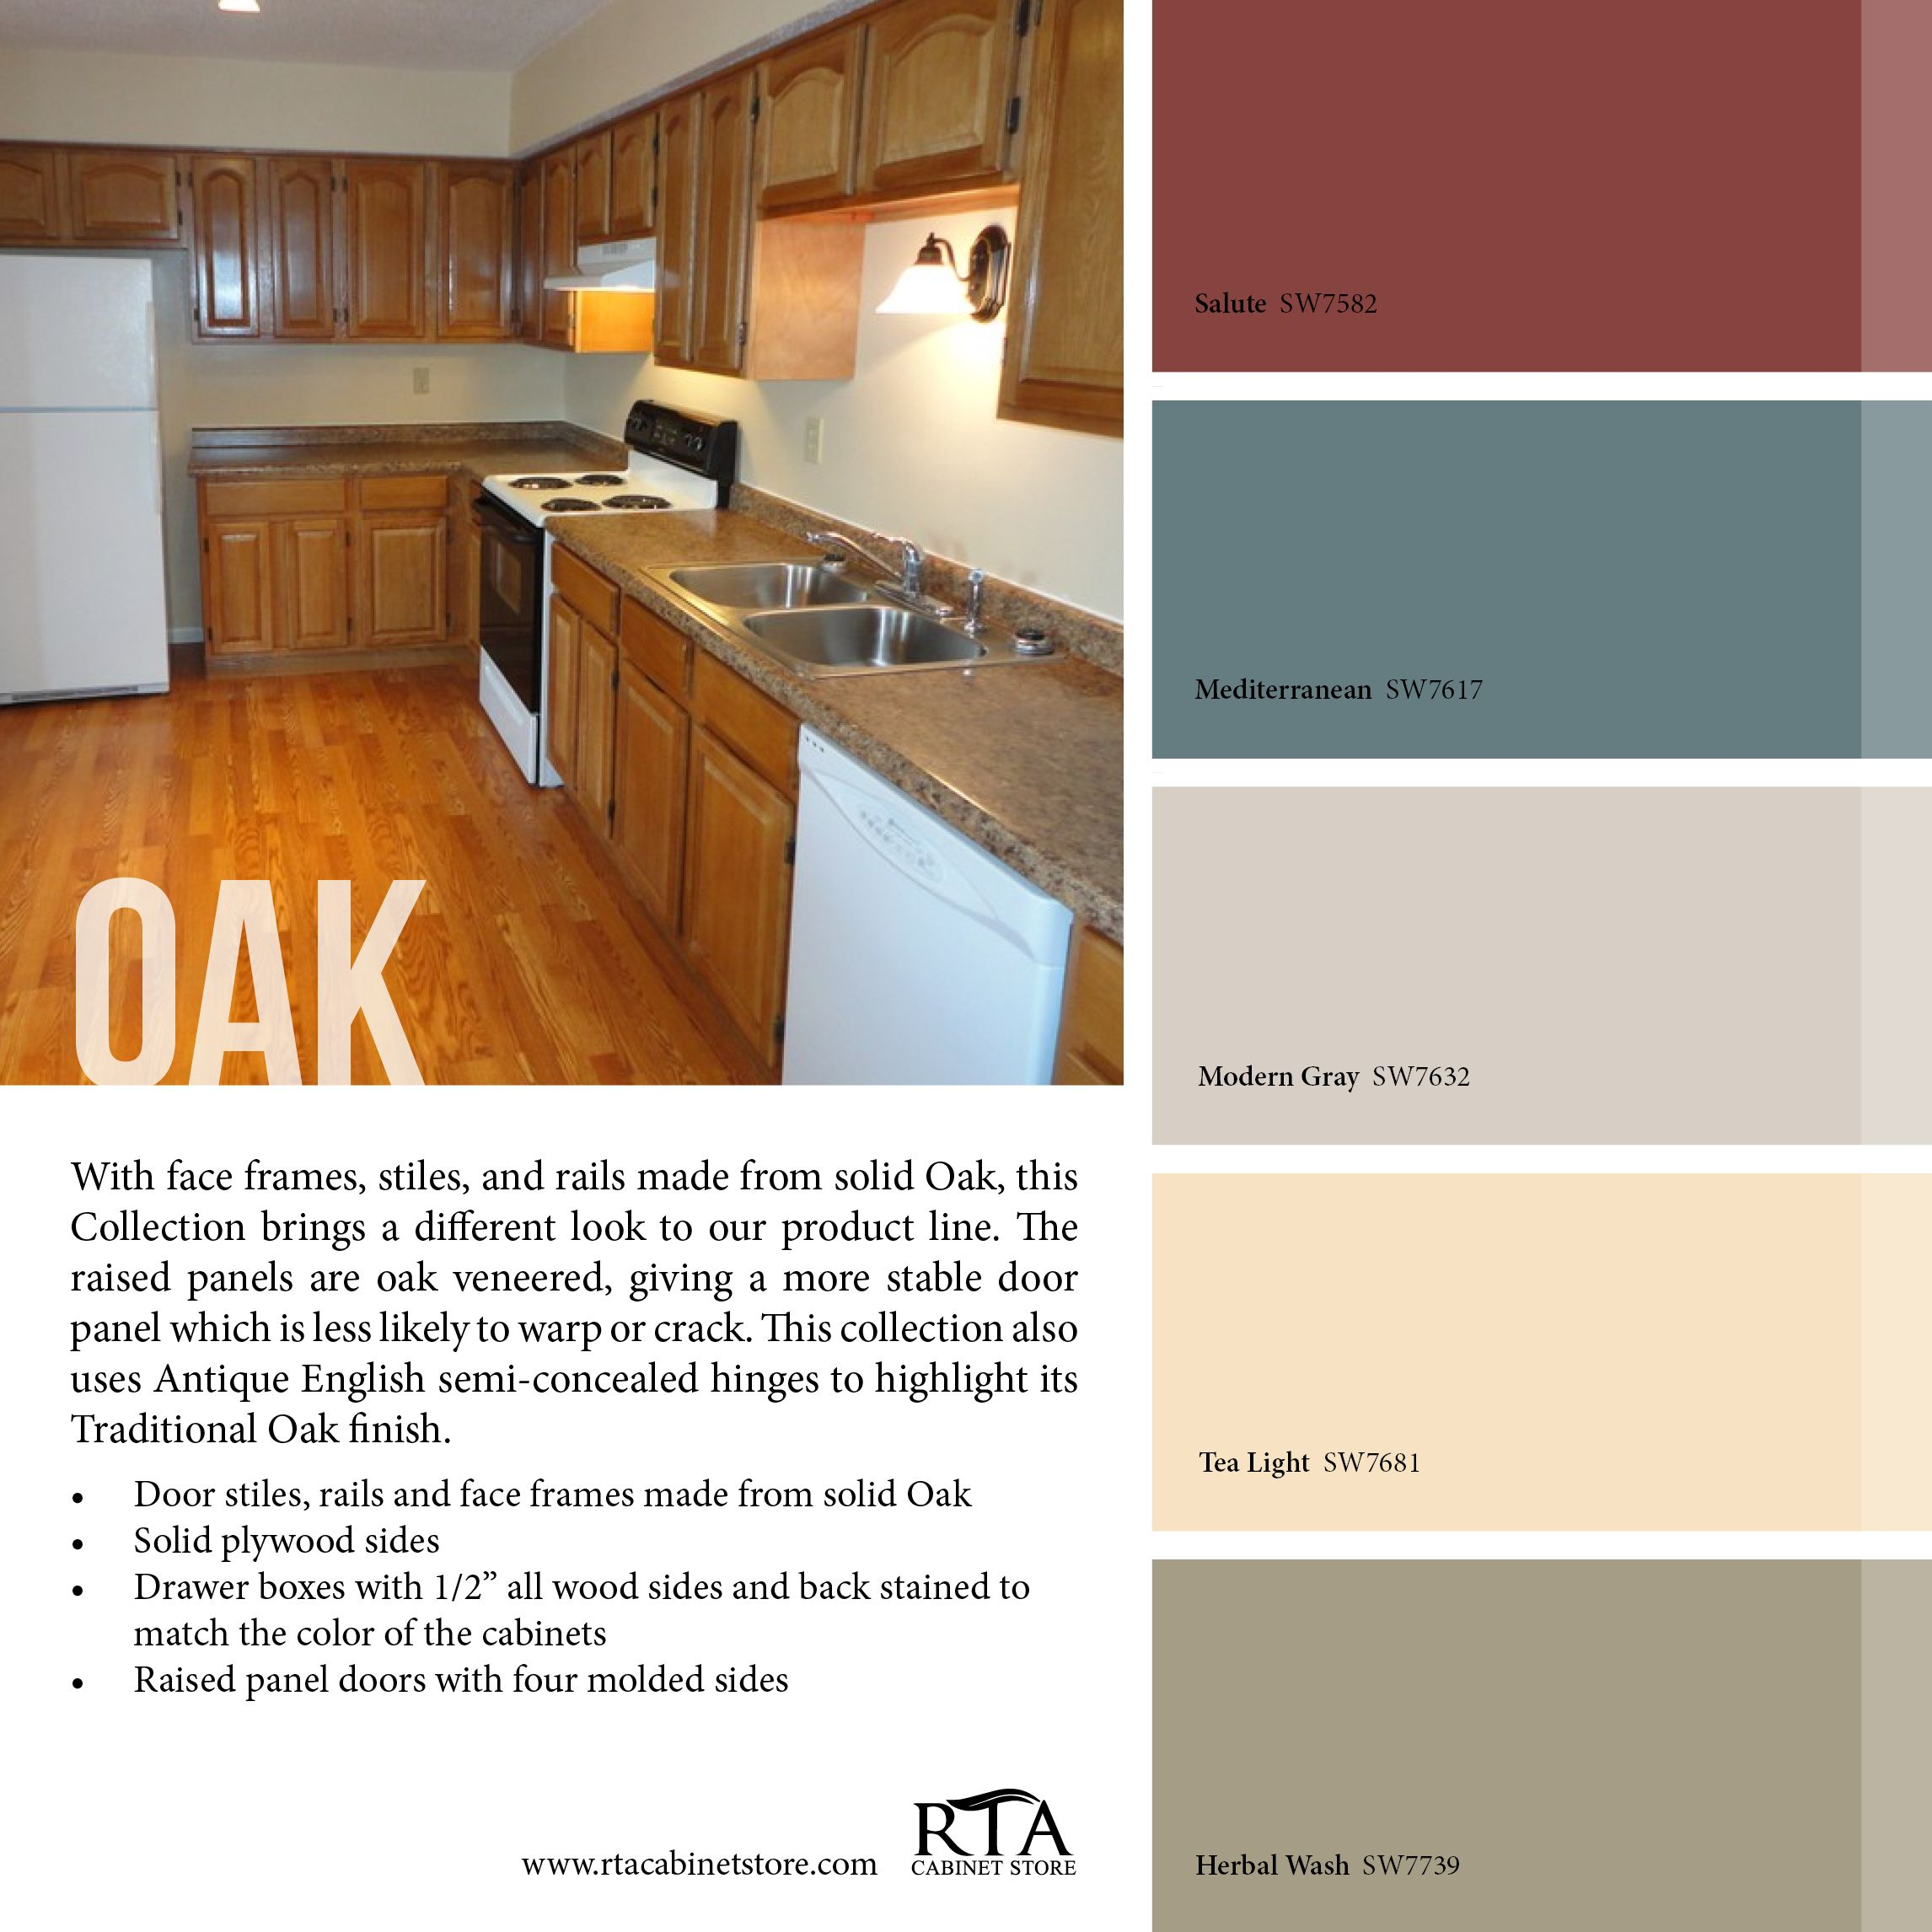 Color Palette To Go With Oak Kitchen Cabinet Line For Those With